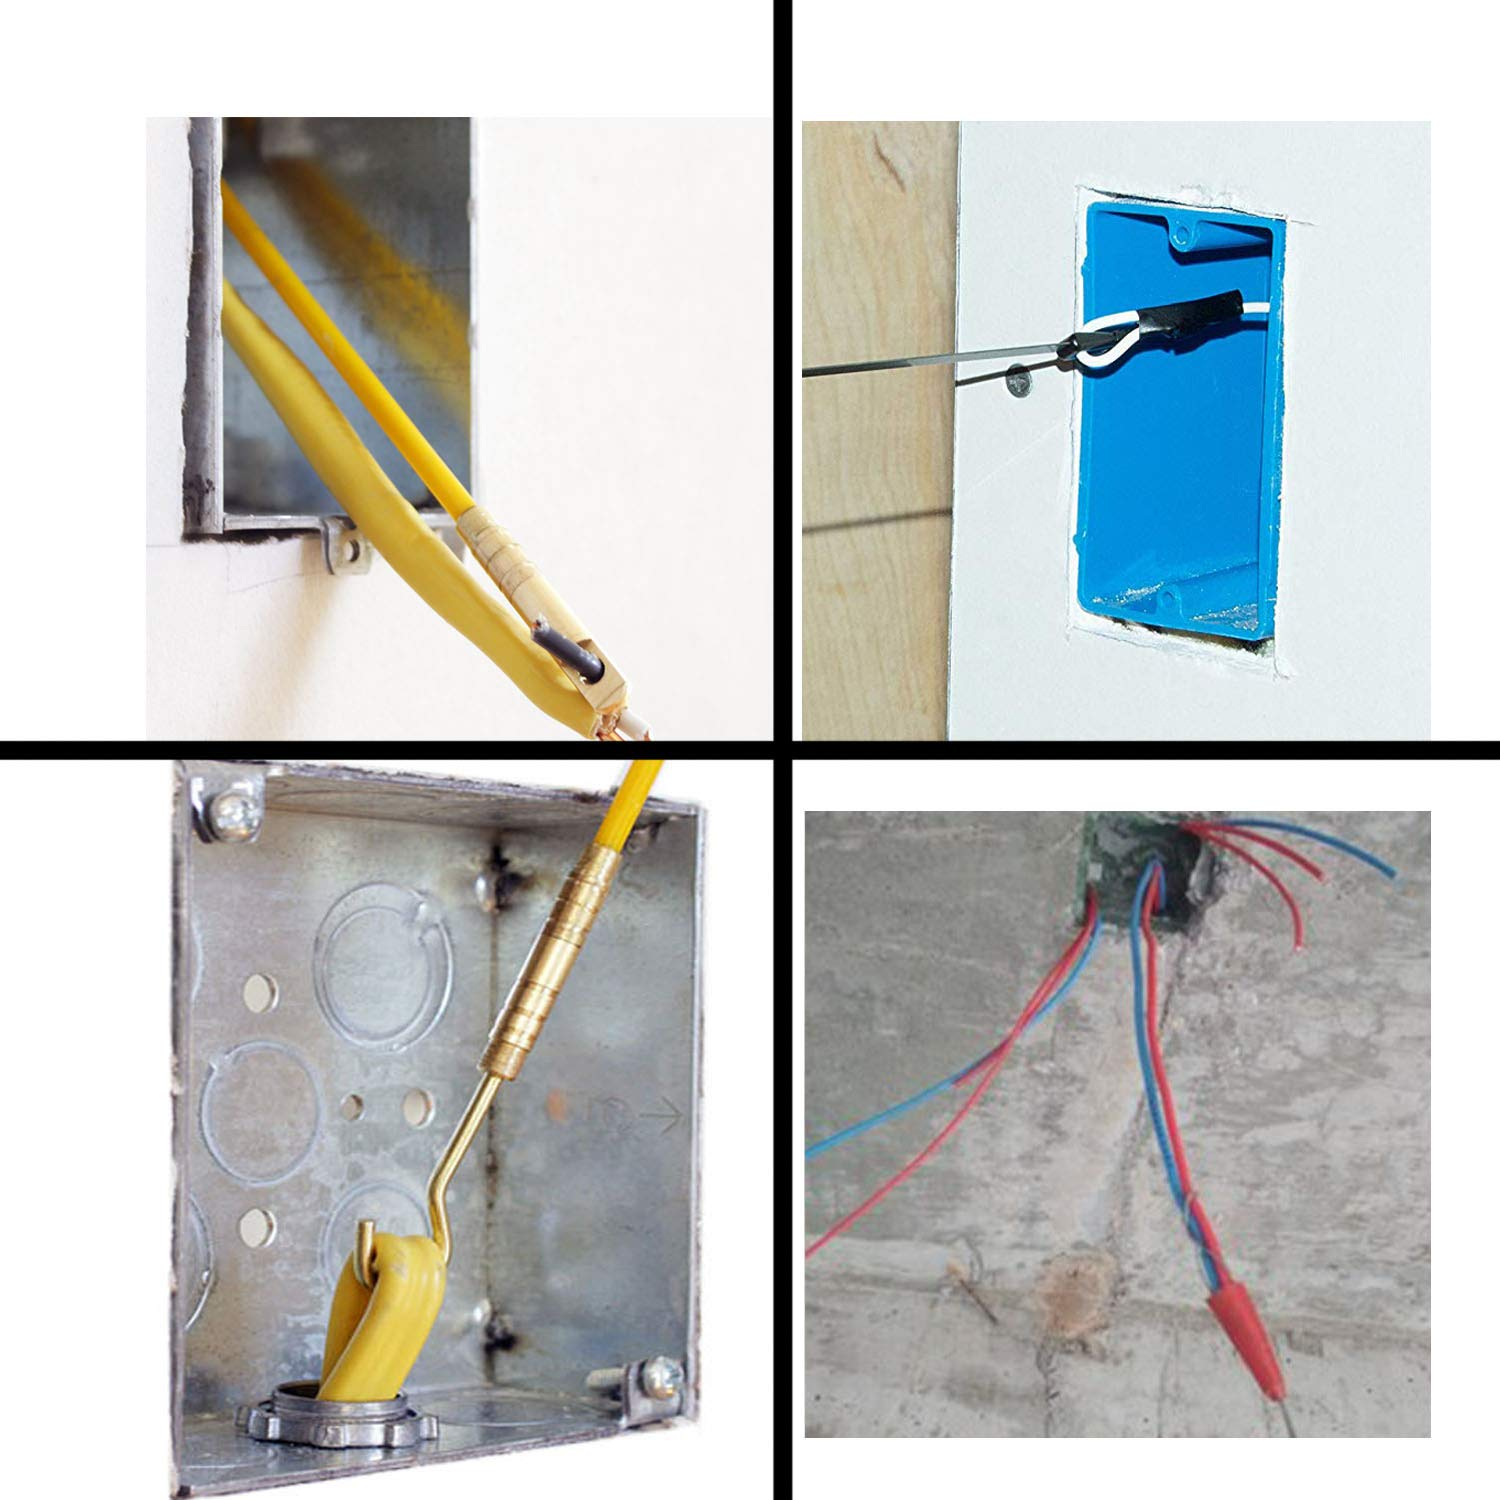 33' Wire Noodler Fiberglass Cable Wire Running Rod Coaxial Electrical Connectable Fish Tape Pull Kit With Hook And Hole Kit In Transparent Tube, Yellow by WXTOOLS (Image #3)